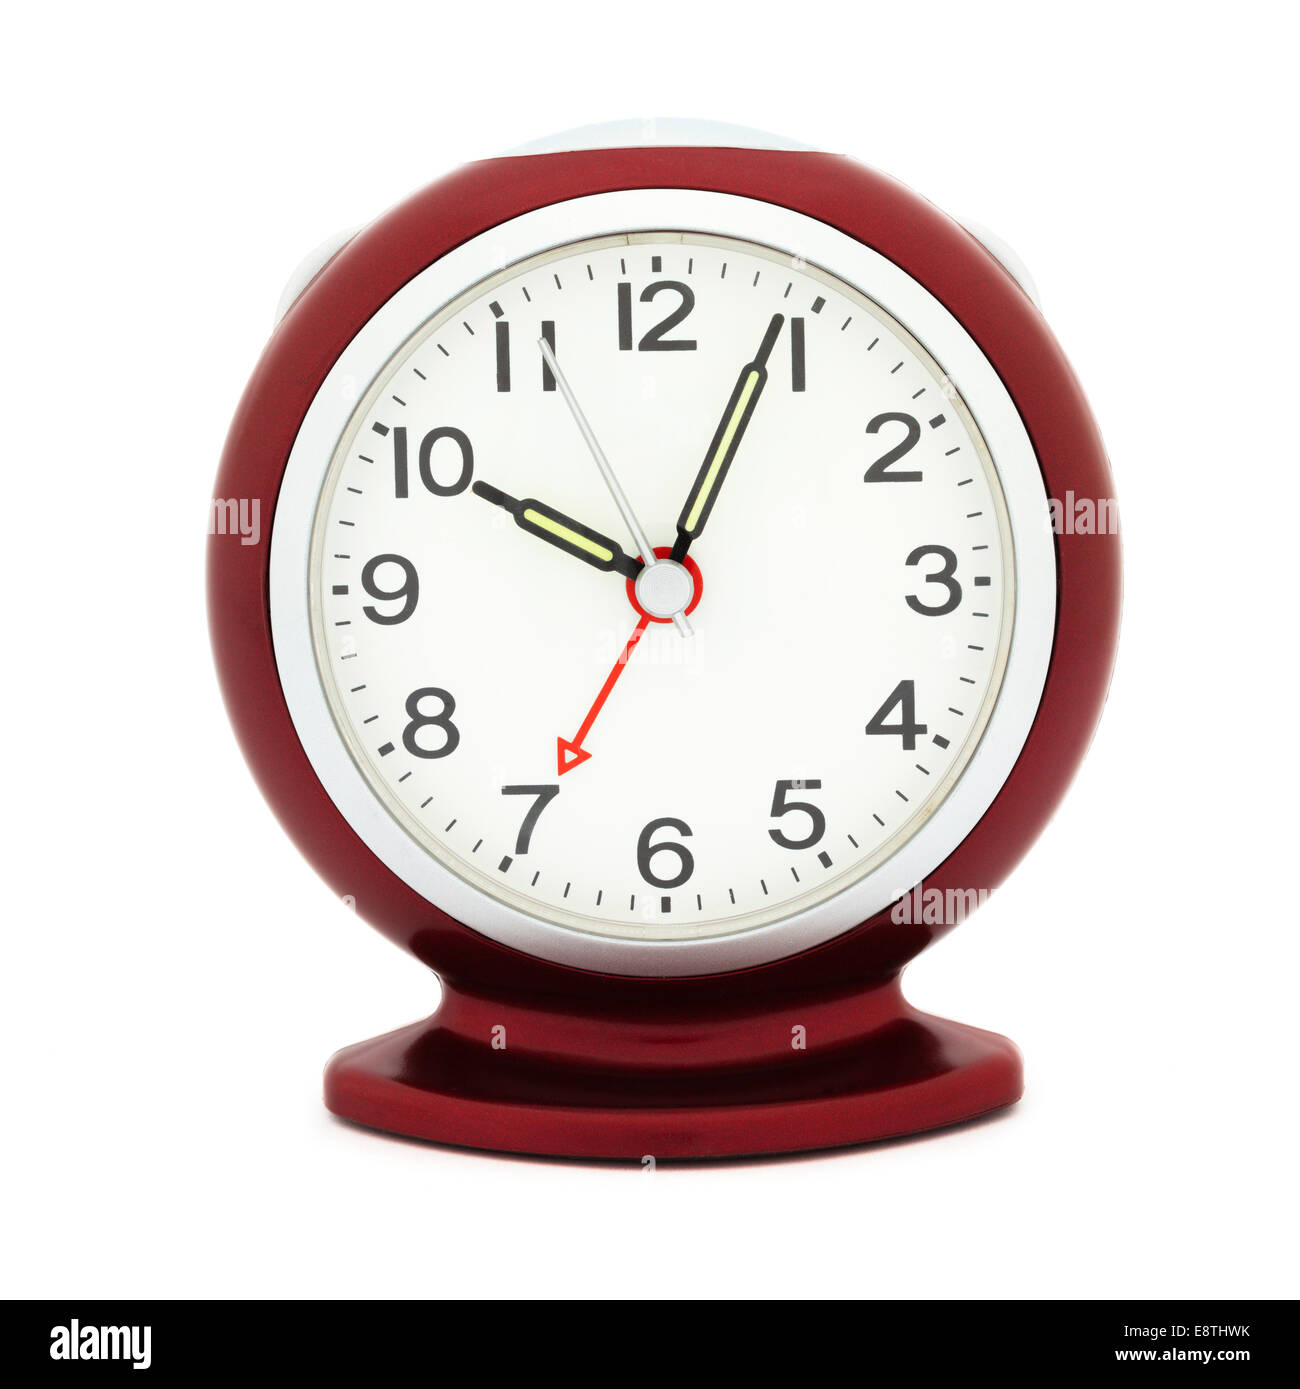 Red alarm clock with luminous hands after 10 am in a morning with alarm set at time 7 am to illustrate being late - Stock Image